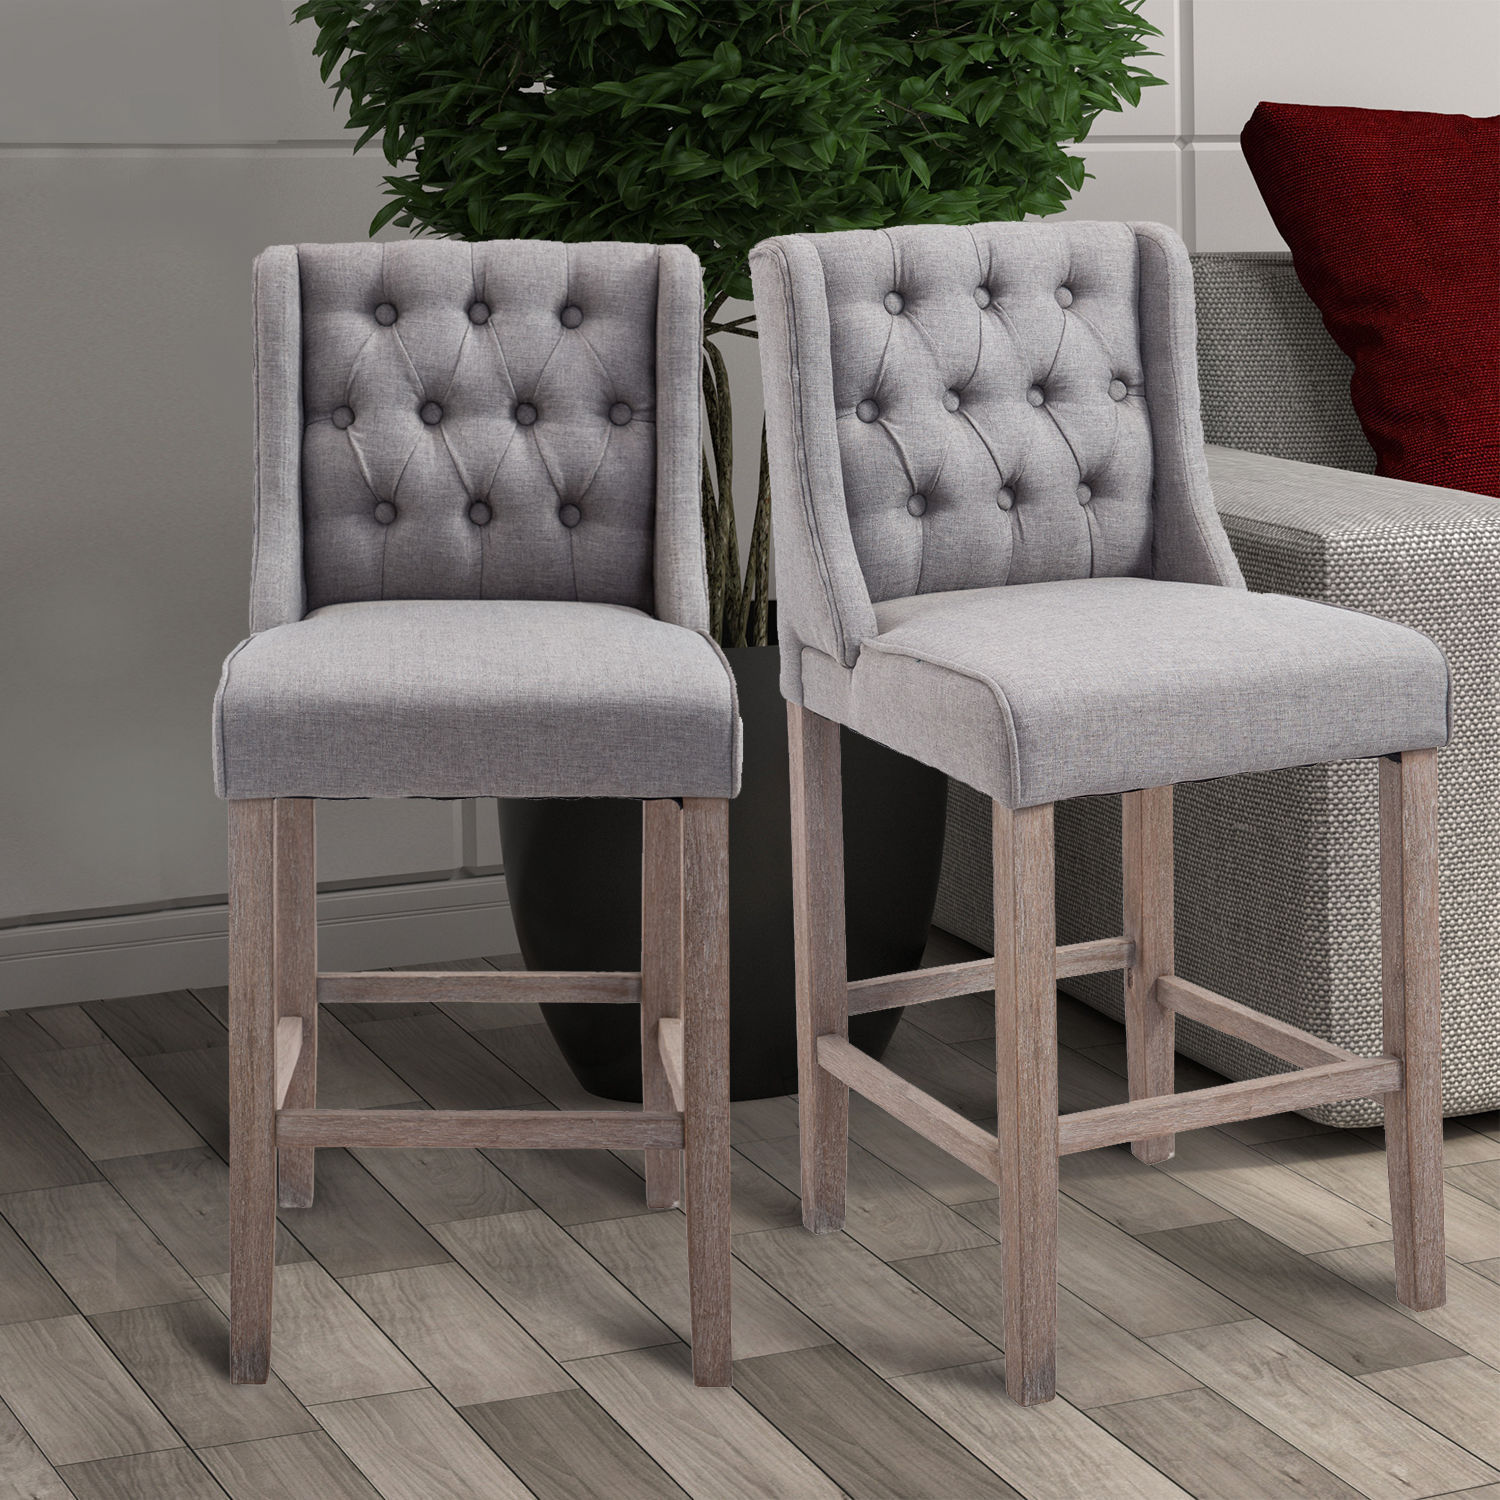 Outstanding Details About 40 Tufted Counter Height Bar Stool Dining Chair Accent Furniture Set Of 2 Gray Machost Co Dining Chair Design Ideas Machostcouk